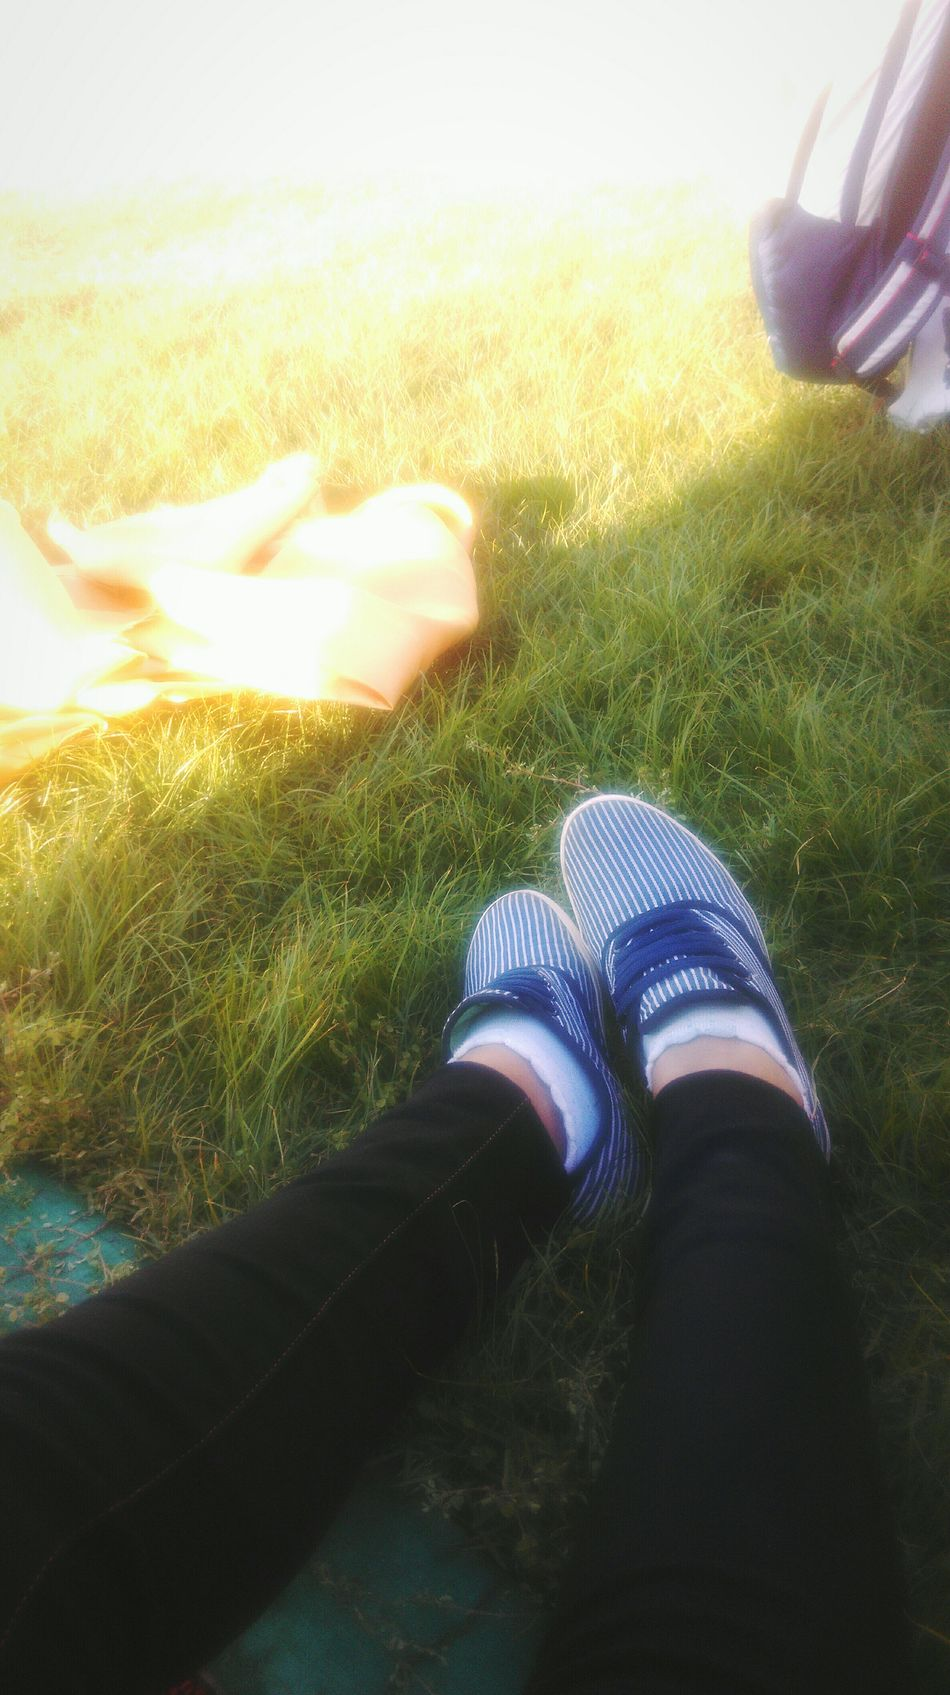 Sitting On The Grass Shoes Sun Hotestday